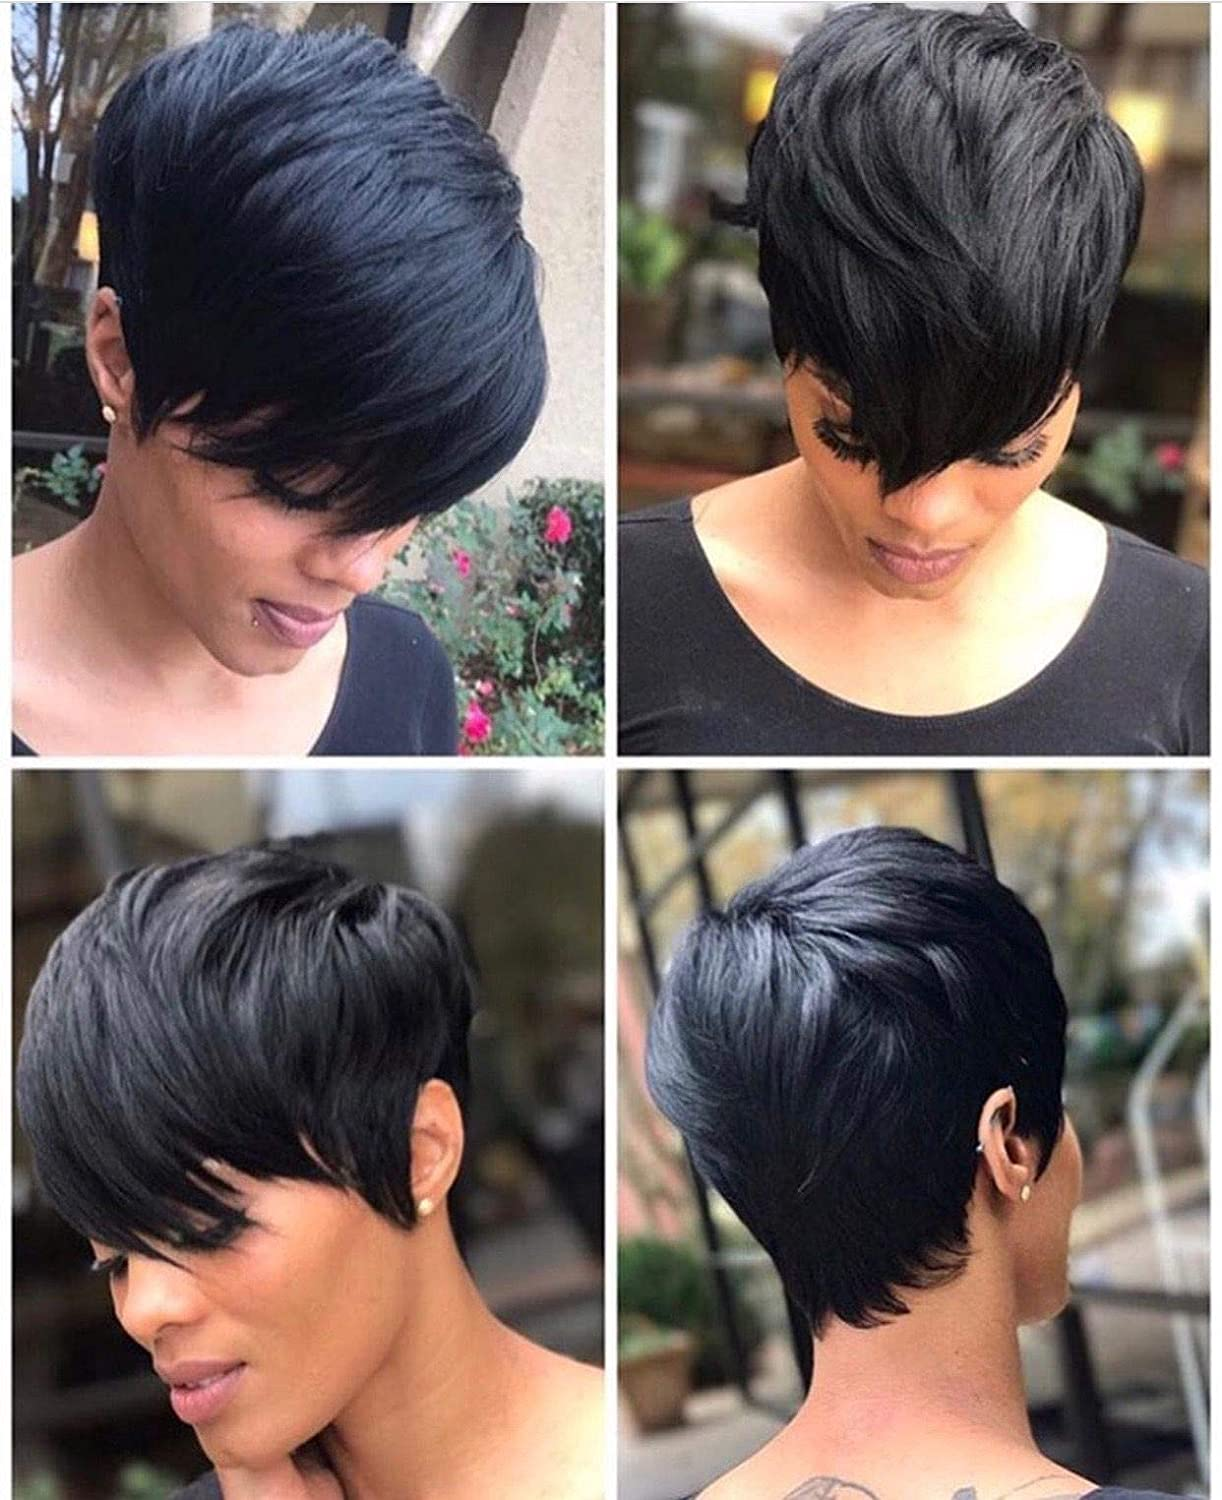 Cheap Hair Wig Hot Sale Short Pixie Cut Wigs Short Wigs For Black Women  Cheap Synthetic Hair Wigs